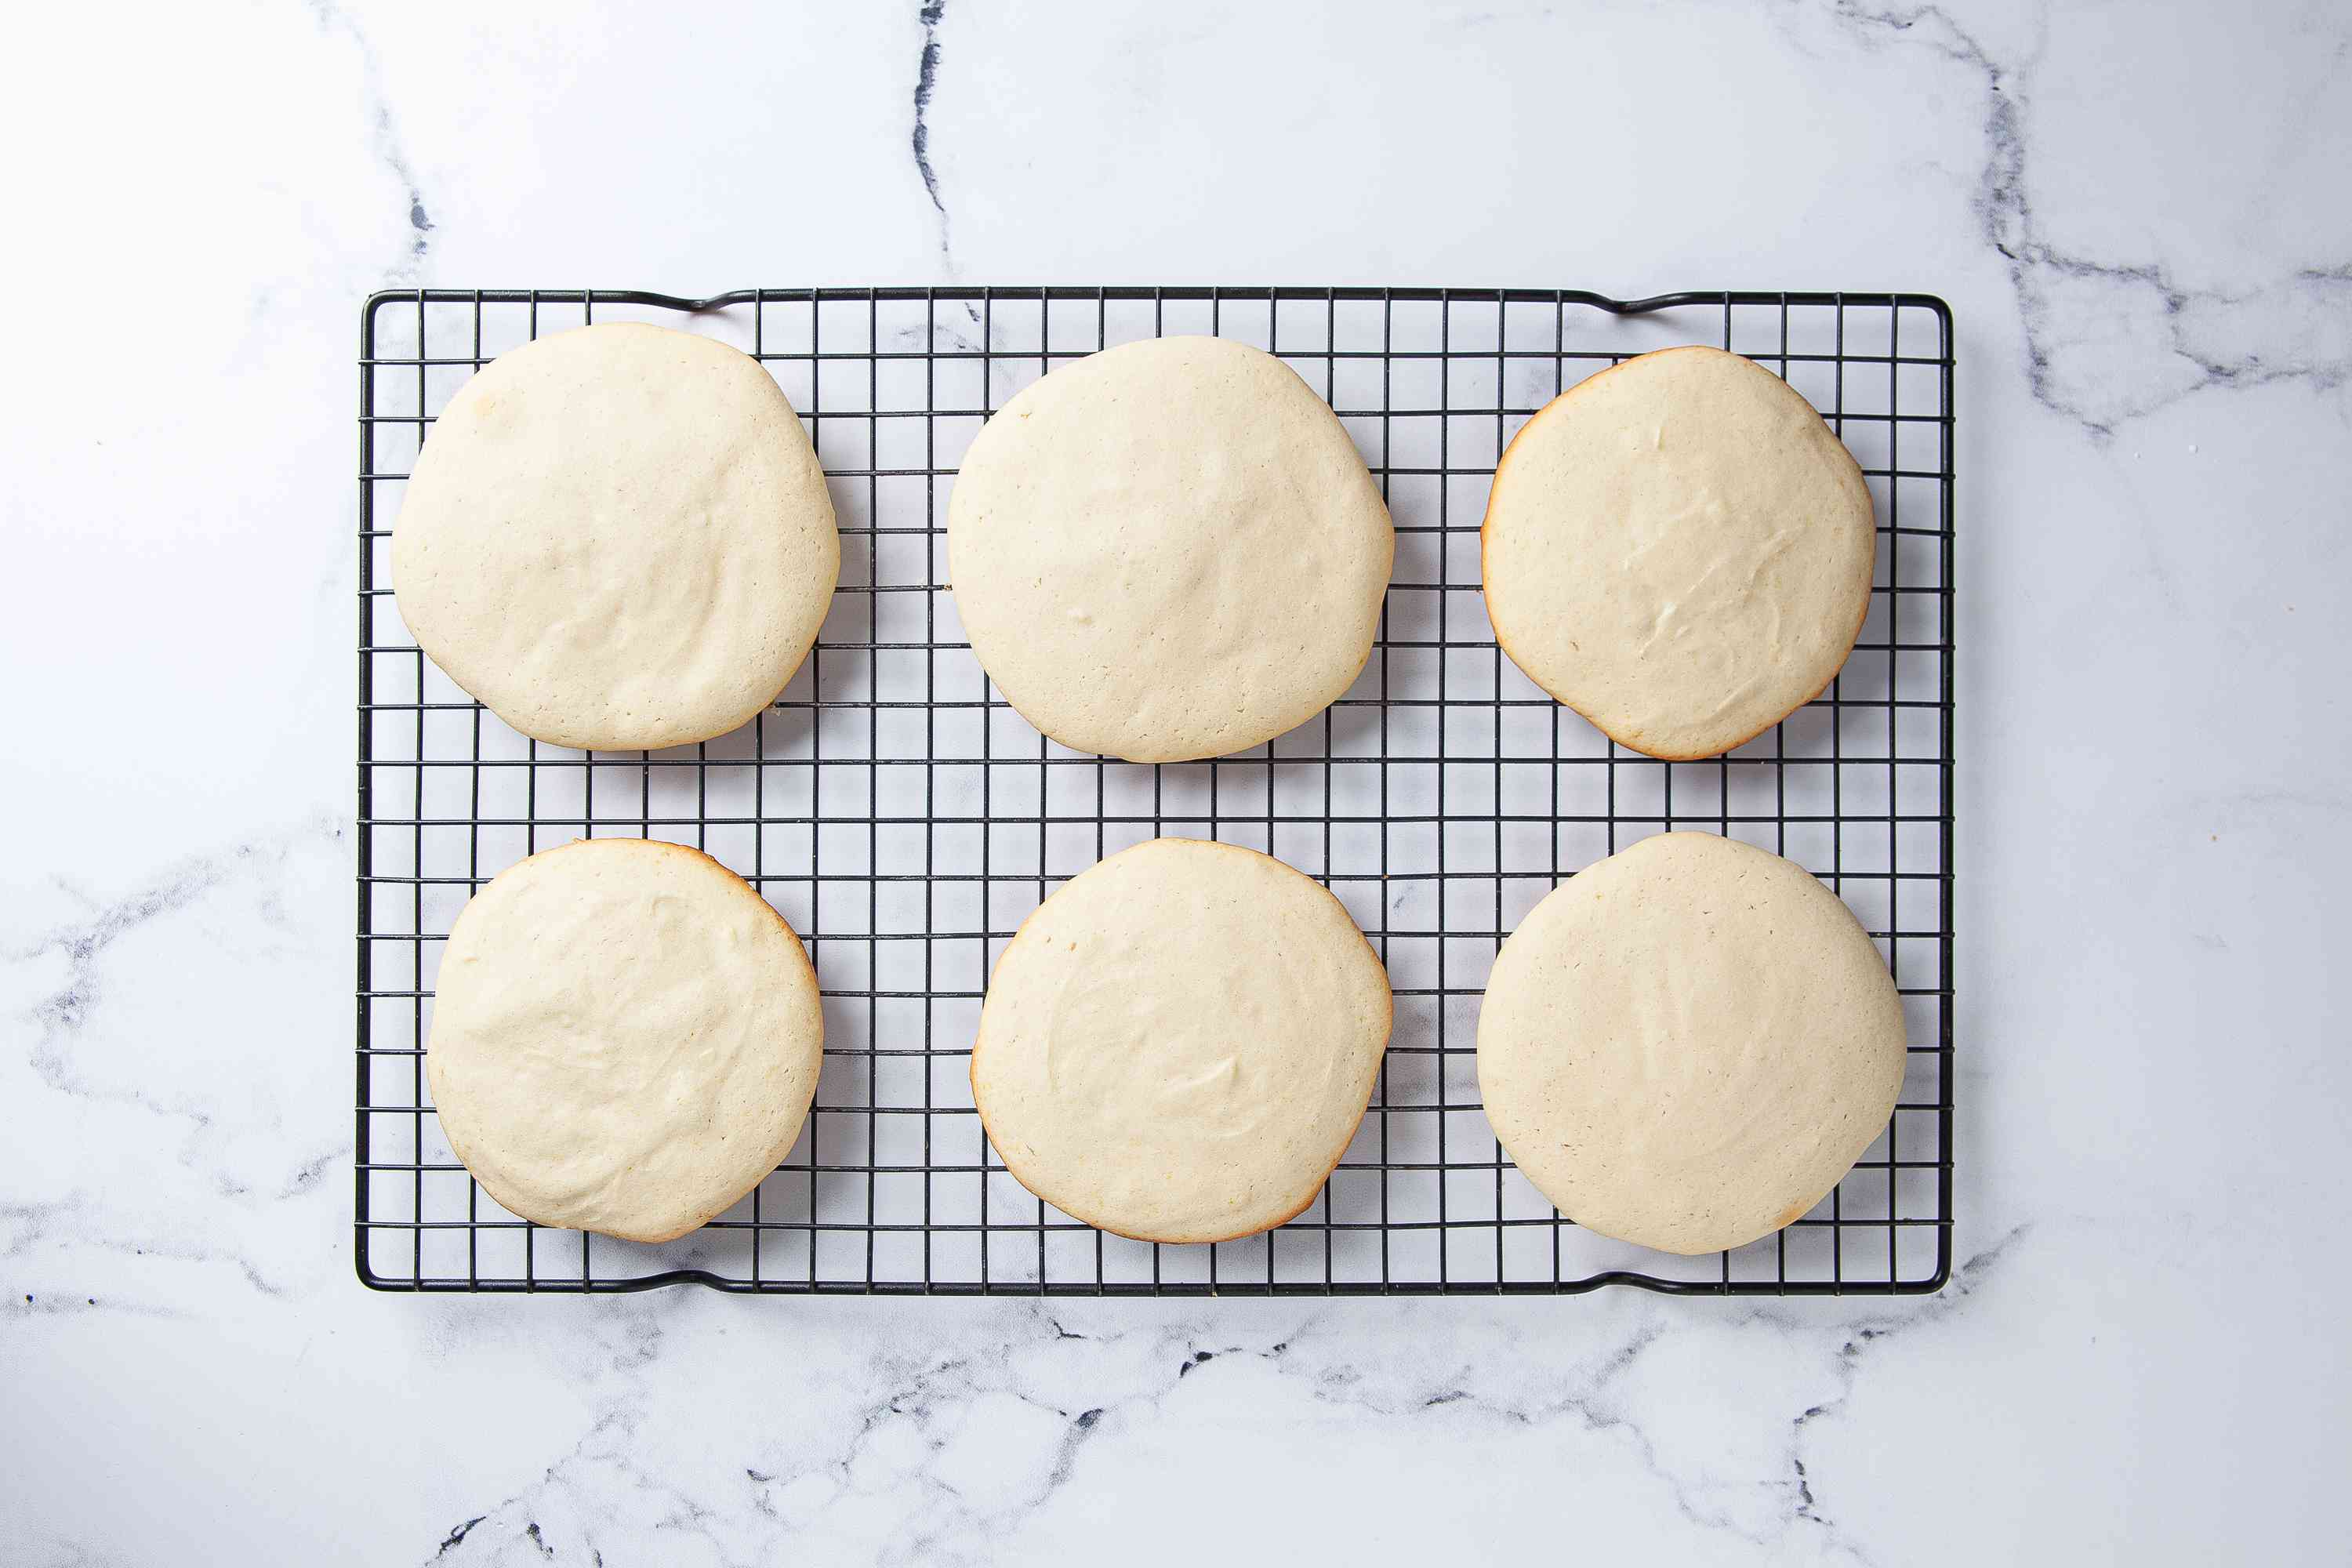 Cool the Black and White Cookies